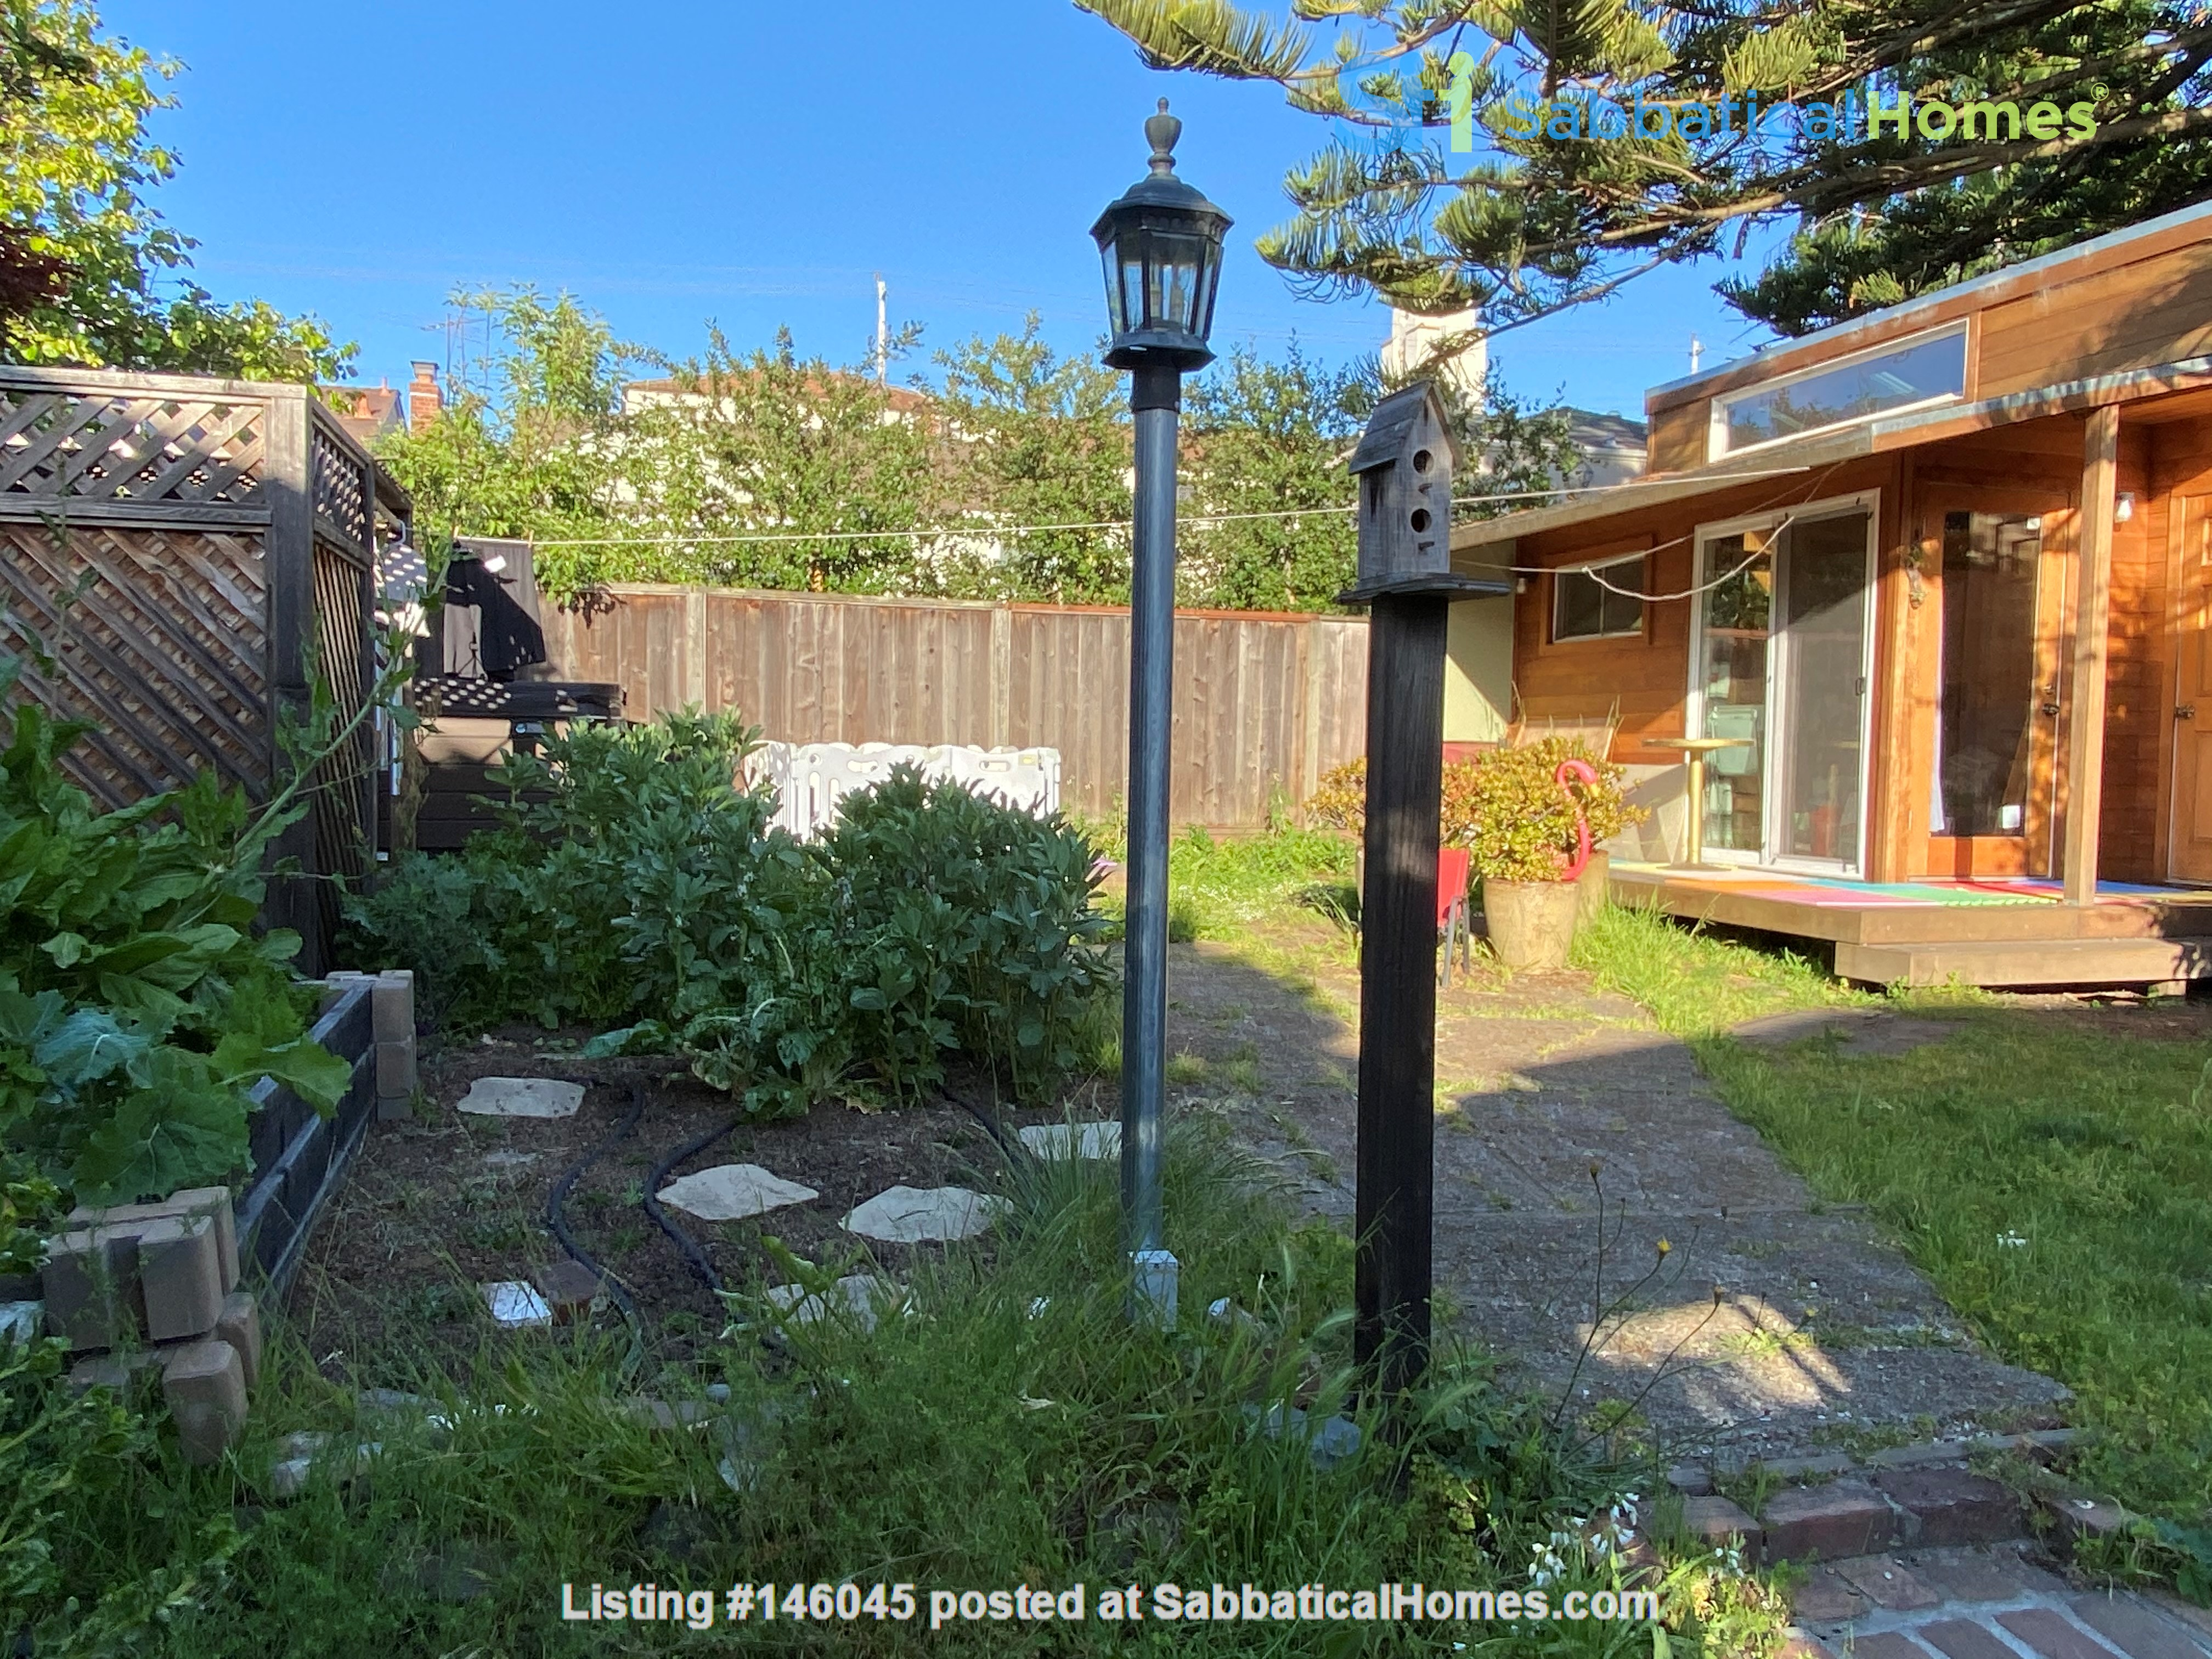 Single family home with lovely garden and hot tub in walkable neighborhood! Home Rental in El Cerrito 1